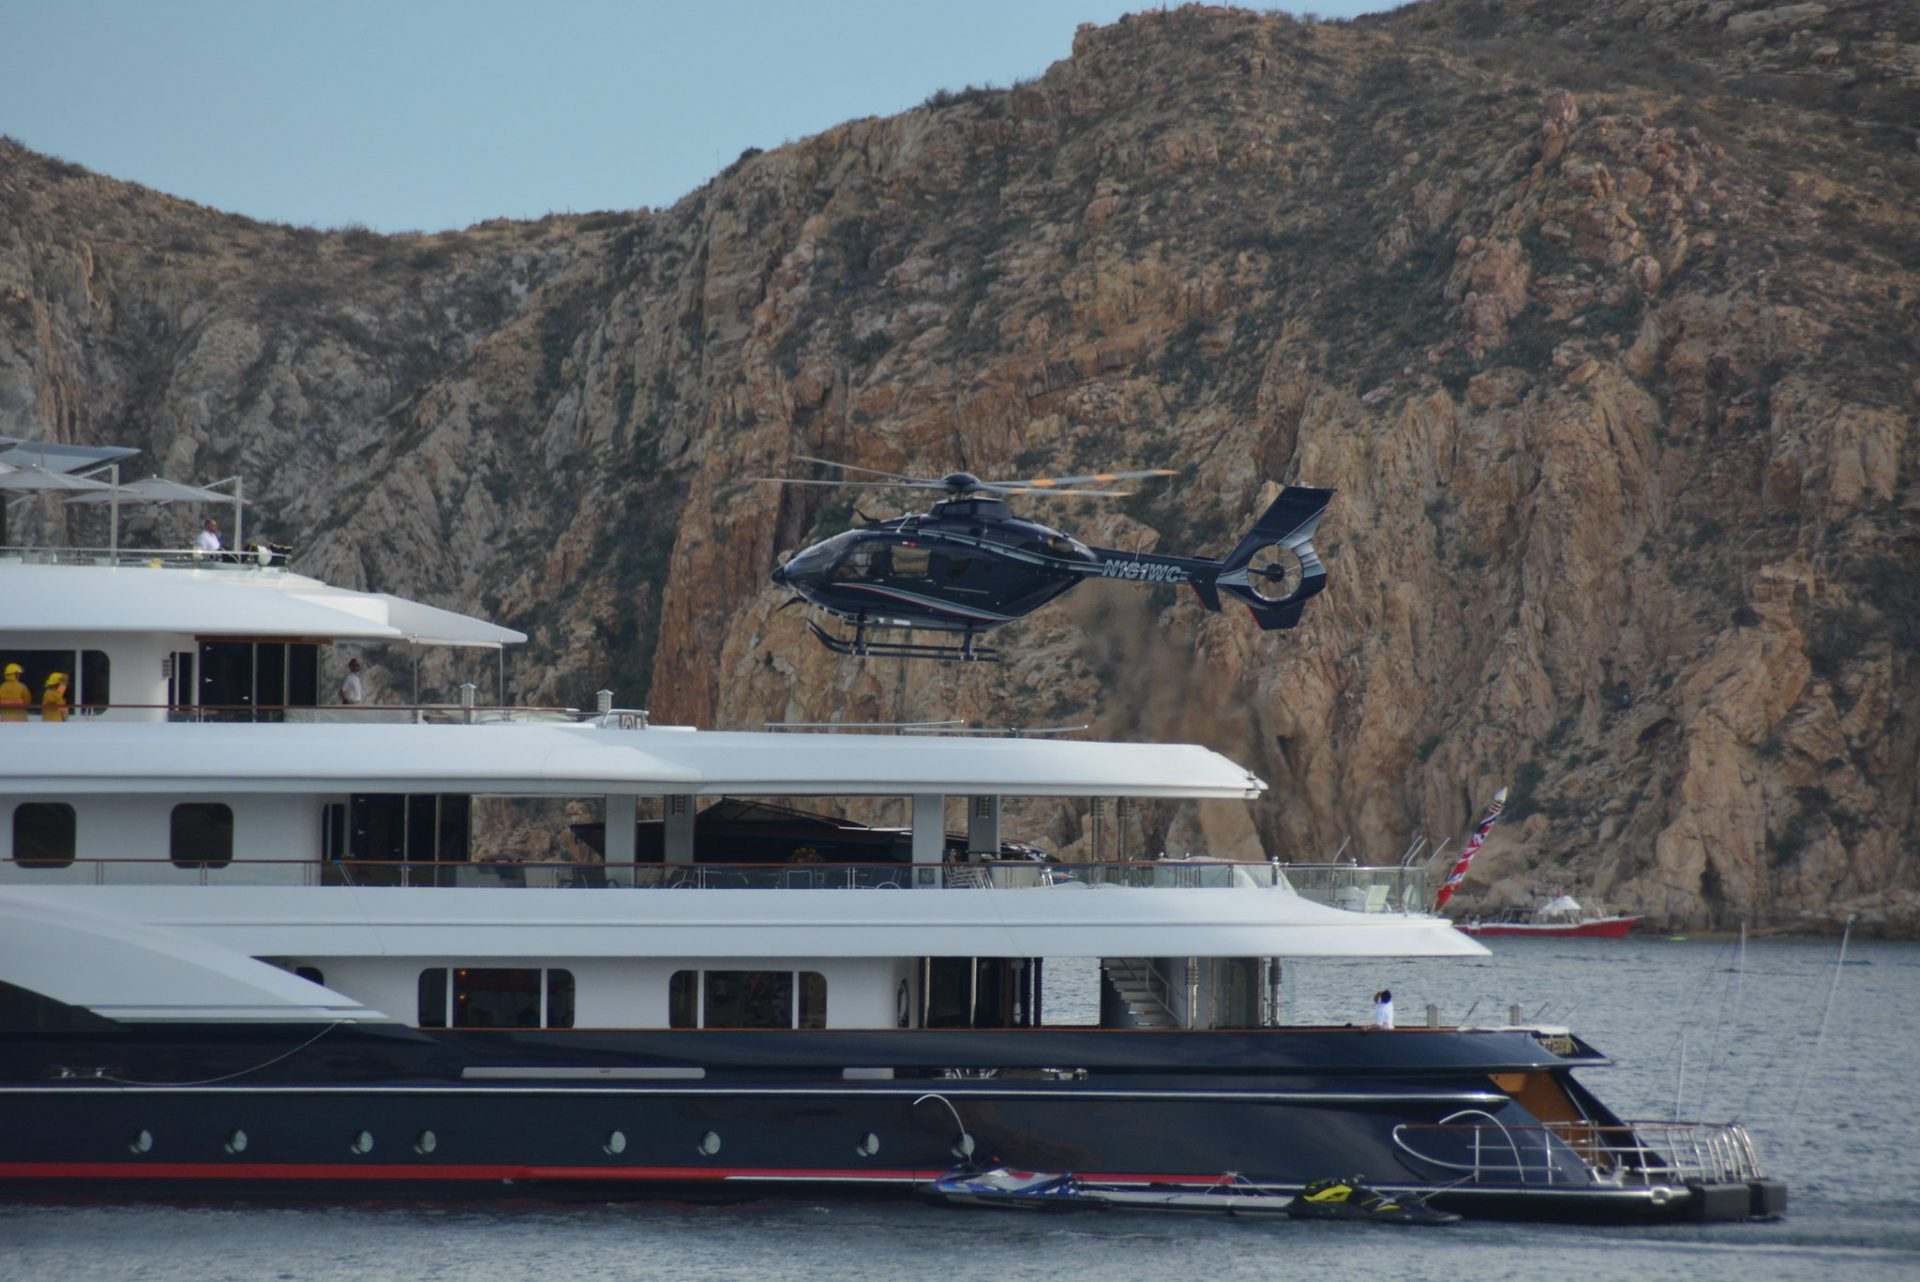 Exploring Cabo by sea and air